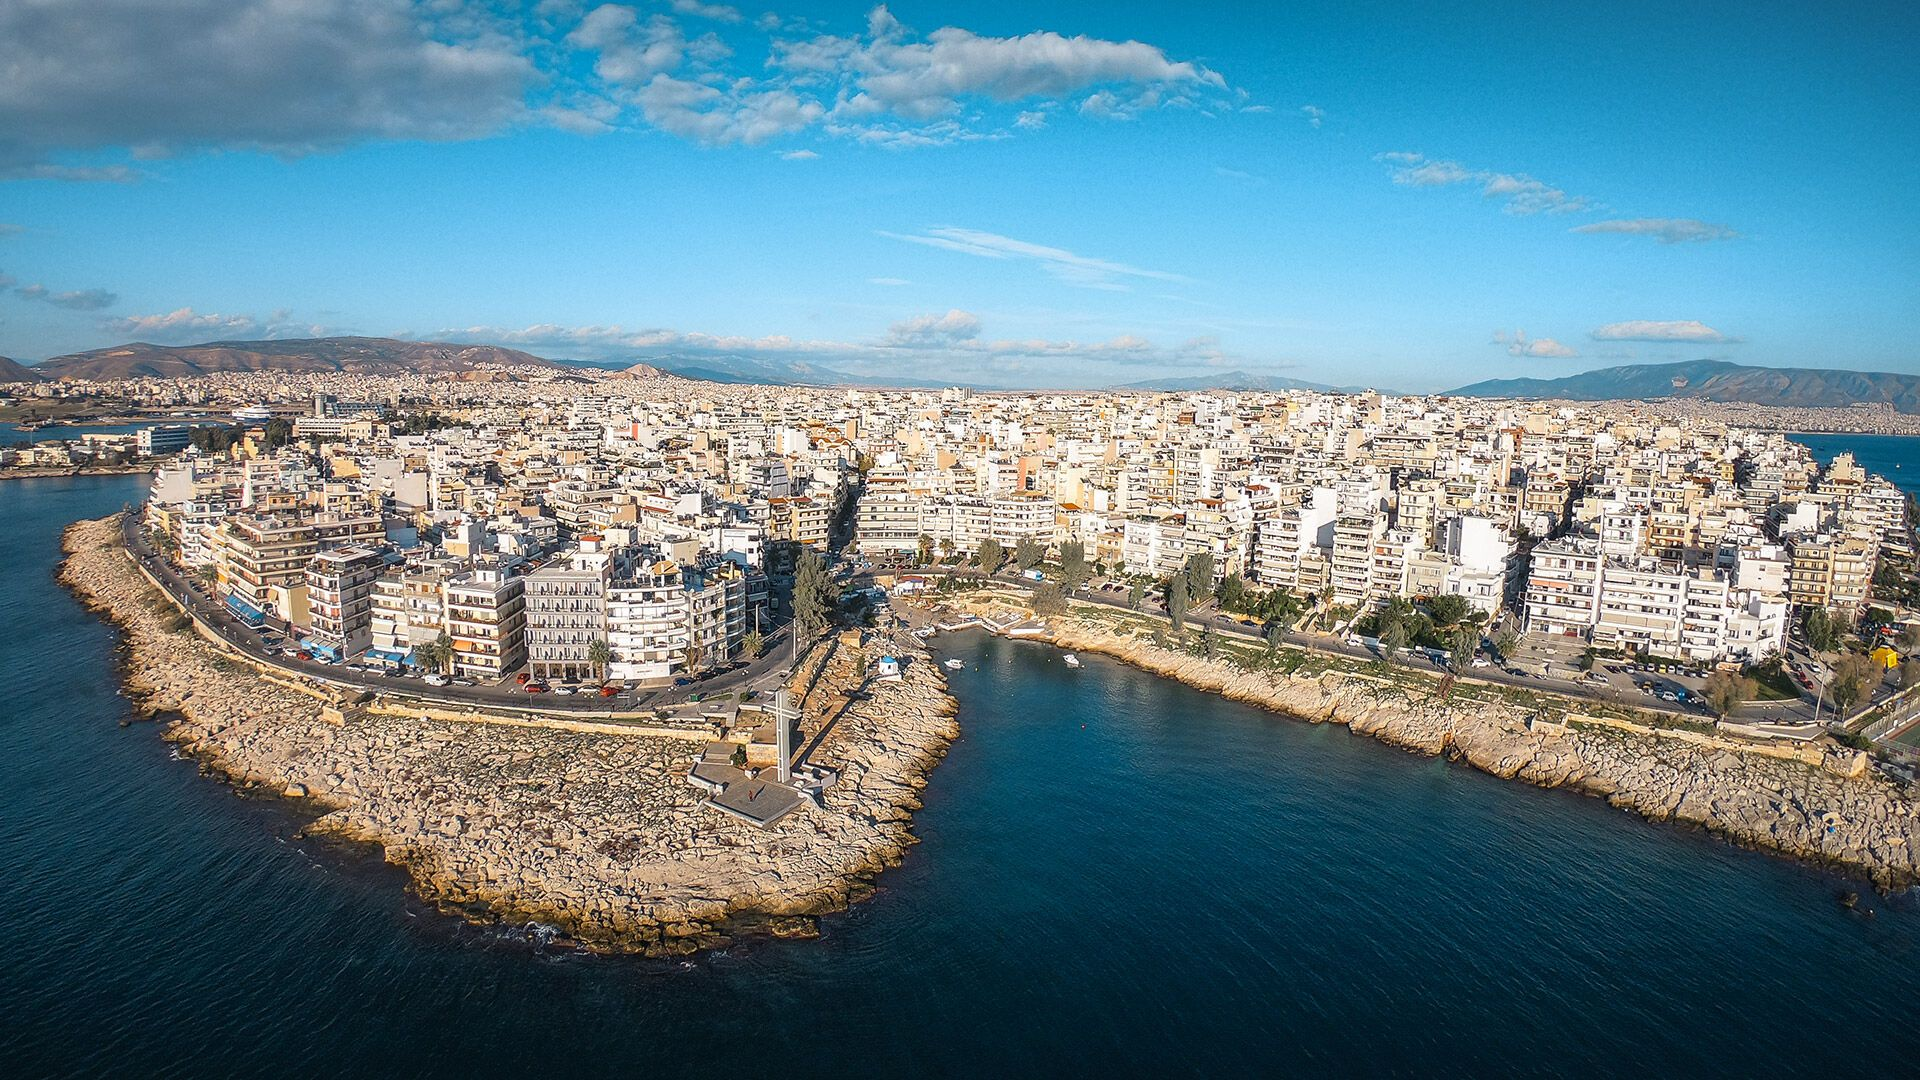 Piraeus from above